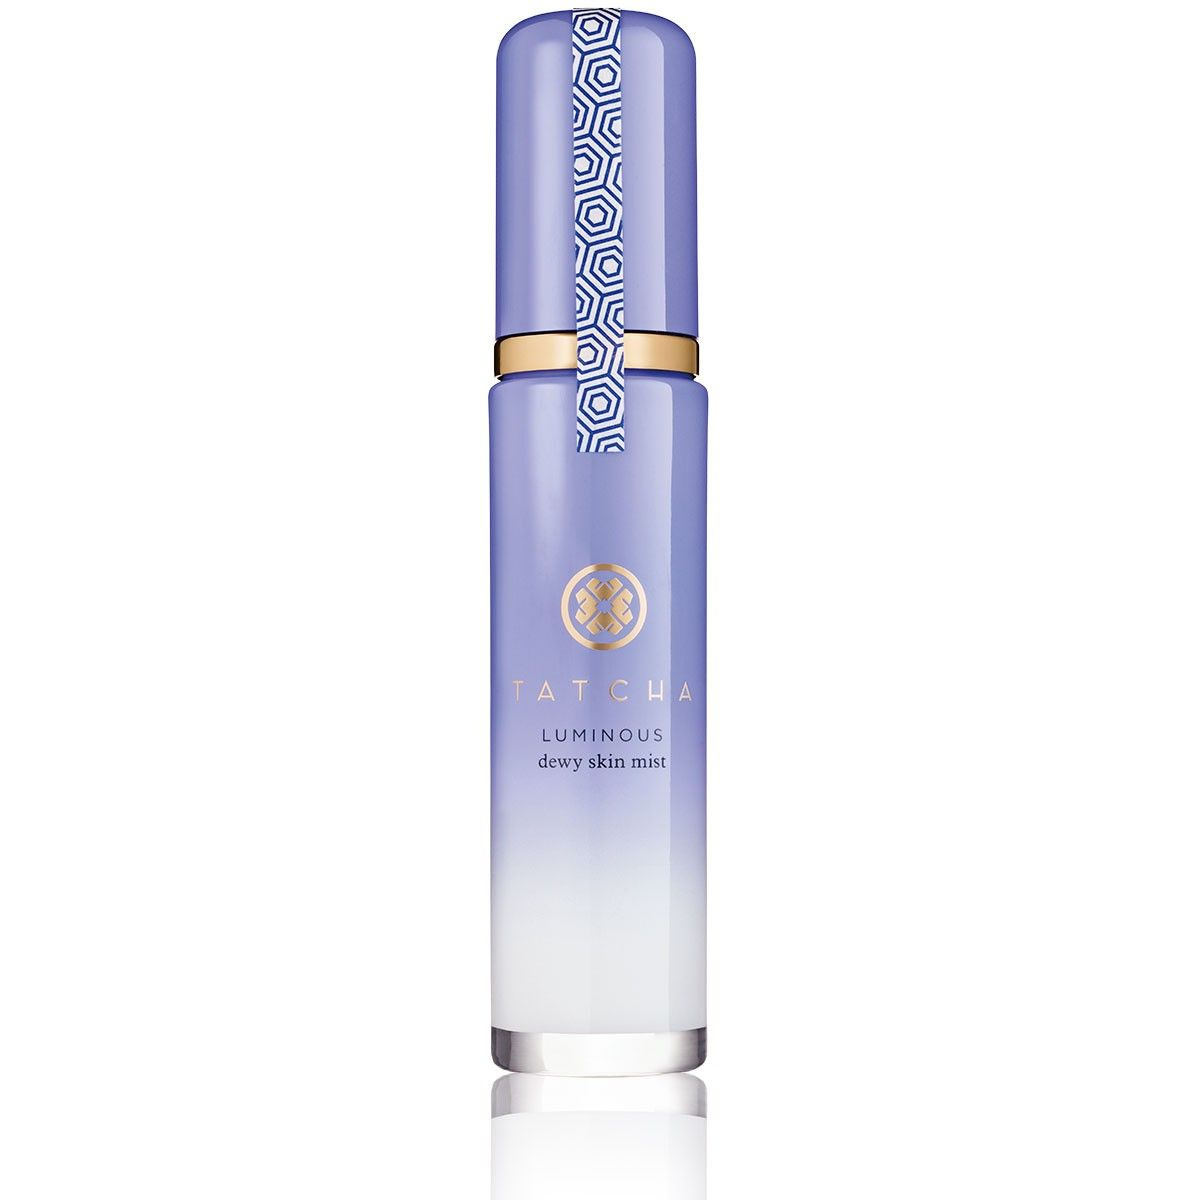 Beauty Tip Of The Week 16 Tatcha Travel Size Skin Care Products And Discount Code Dewy Skin Mist Dewy Skin Tatcha Luminous Dewy Skin Mist